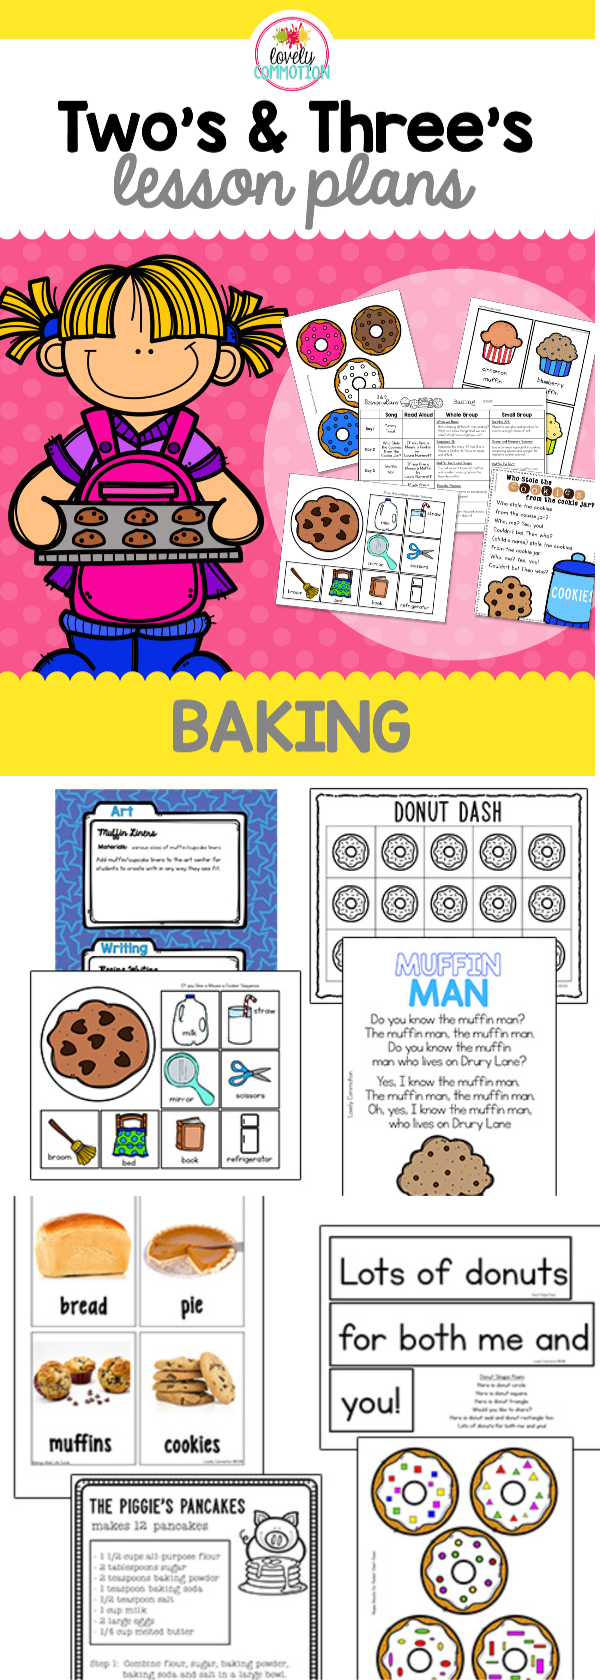 Yum Cookies Donuts Muffins And Pie This Two And Three Year Old Lesson Plan Set Is All Abou Cooking Lesson Plans Lesson Plans For Toddlers Preschool Cooking [ 1680 x 600 Pixel ]